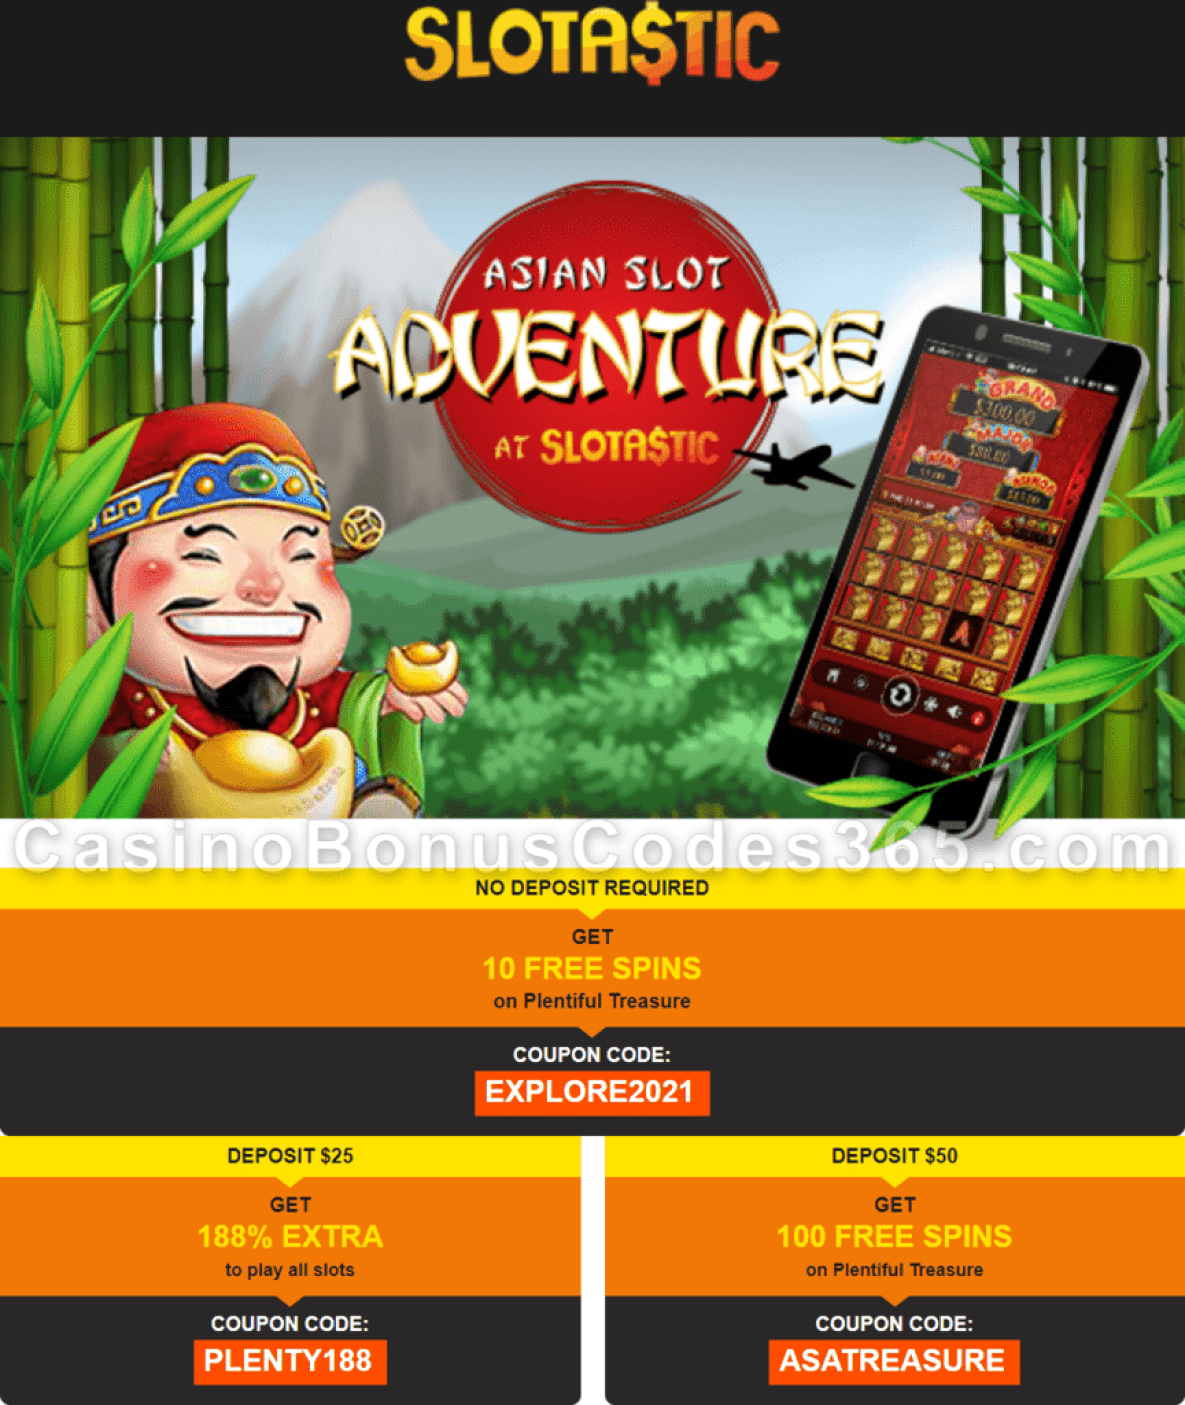 Slotastic Online Casino Special Chinese New Year Offer RTG Plentiful Treasure